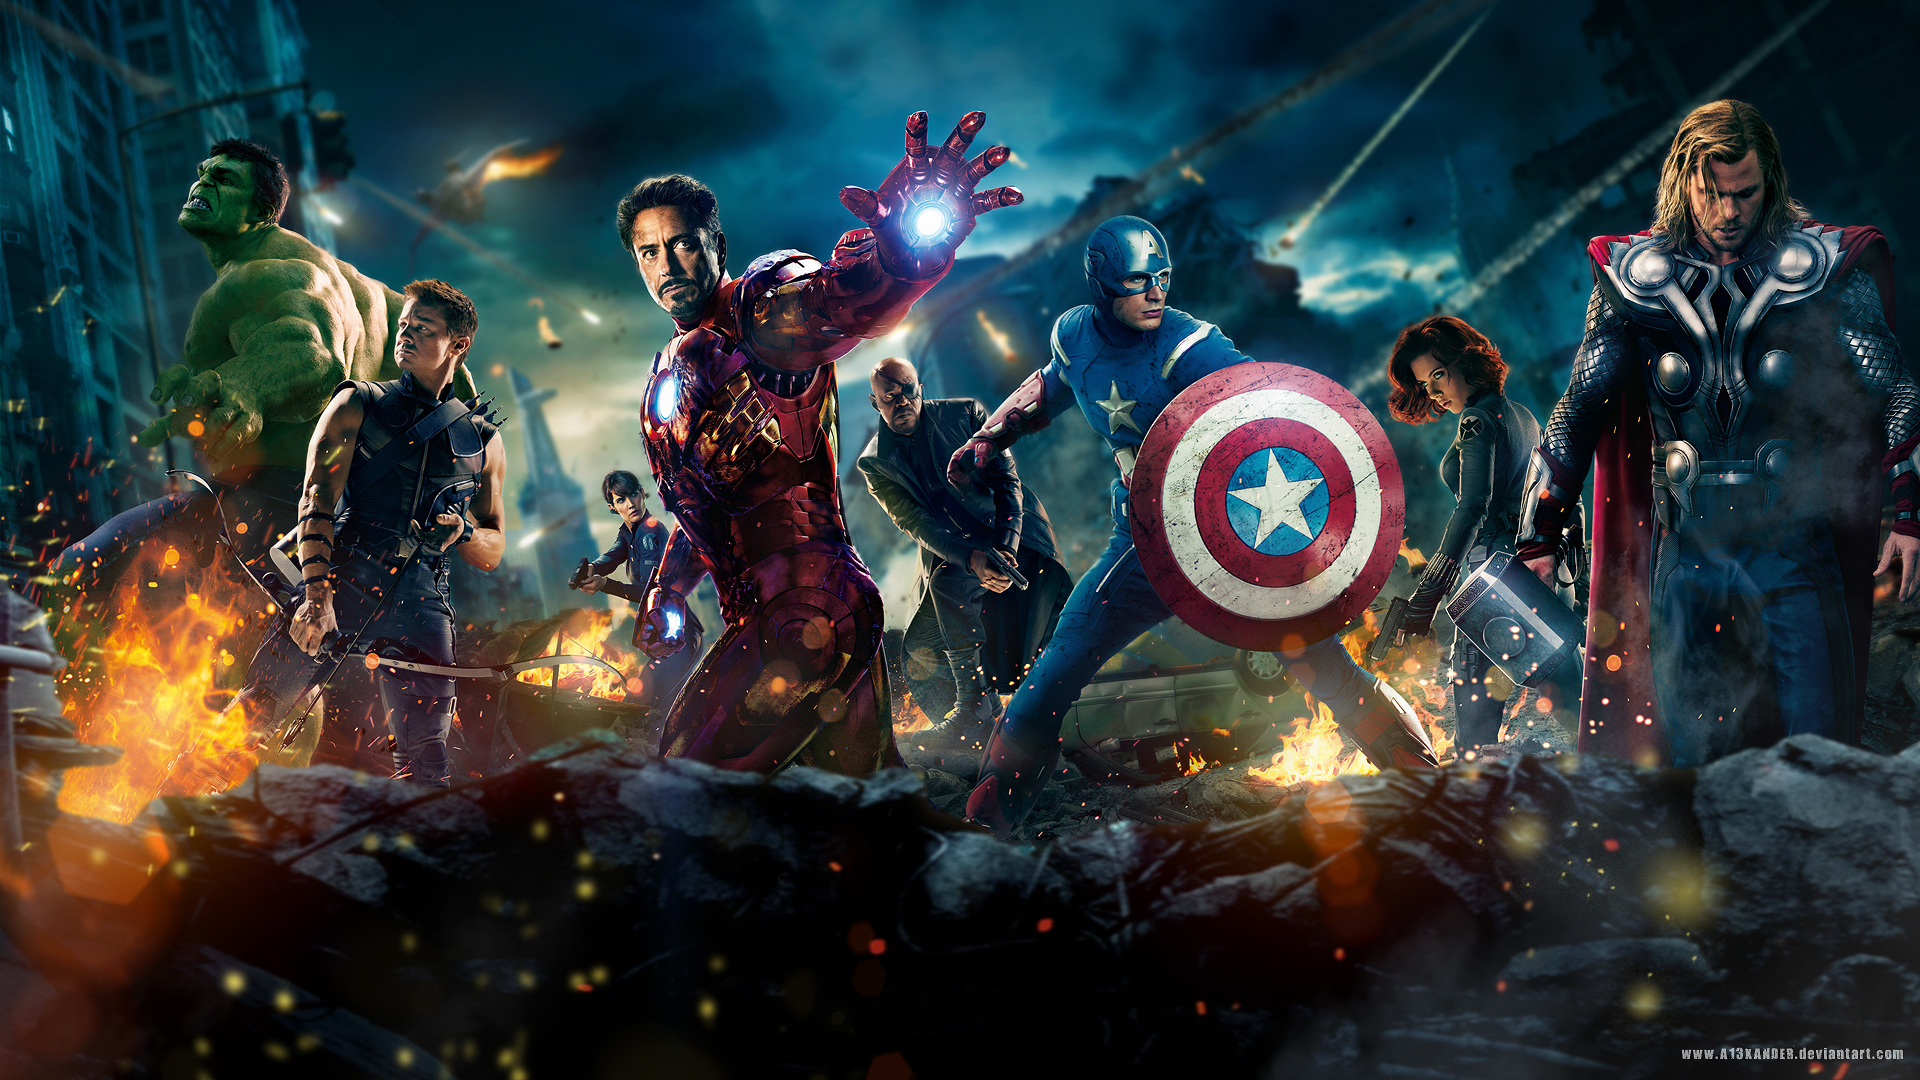 The Avengers Movie 2012